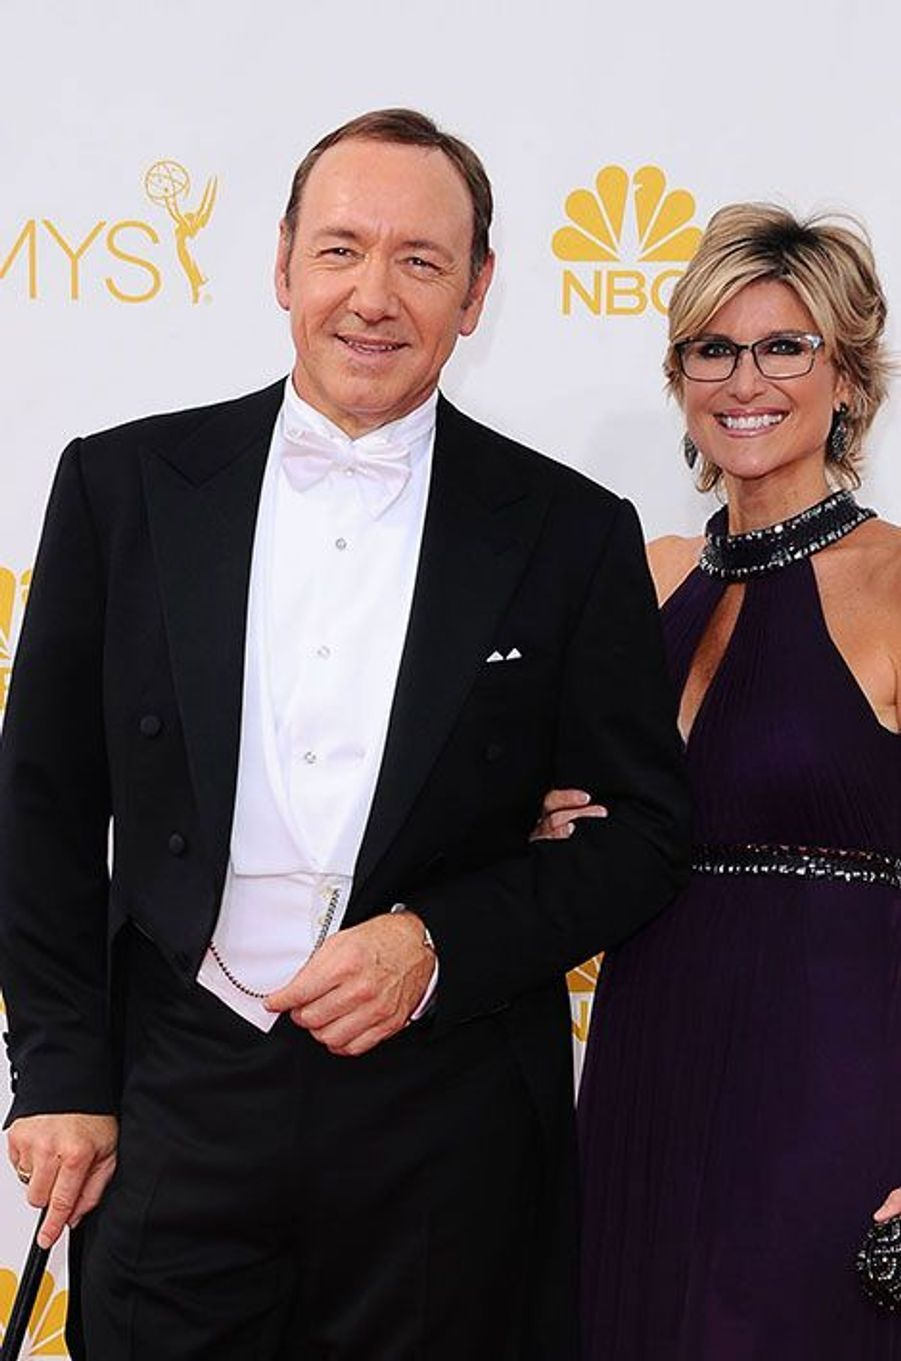 Ashleigh Banfield et Kevin Spacey aux Emmy Awards 2014